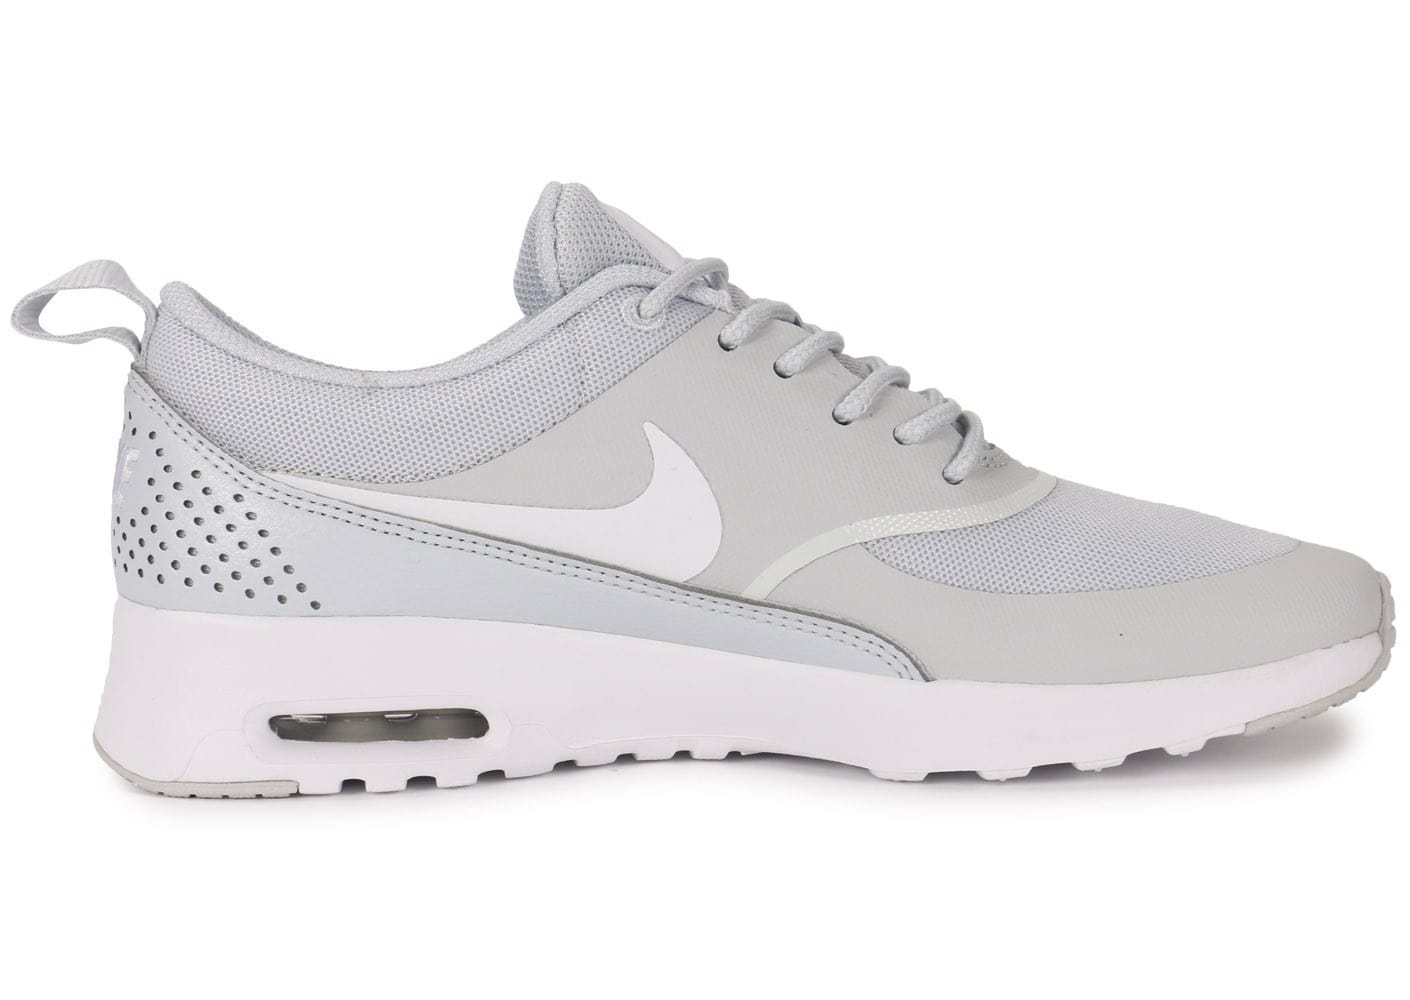 check out 3a779 28e34 ... Chaussures Nike Air Max Thea grise vue dessous ...